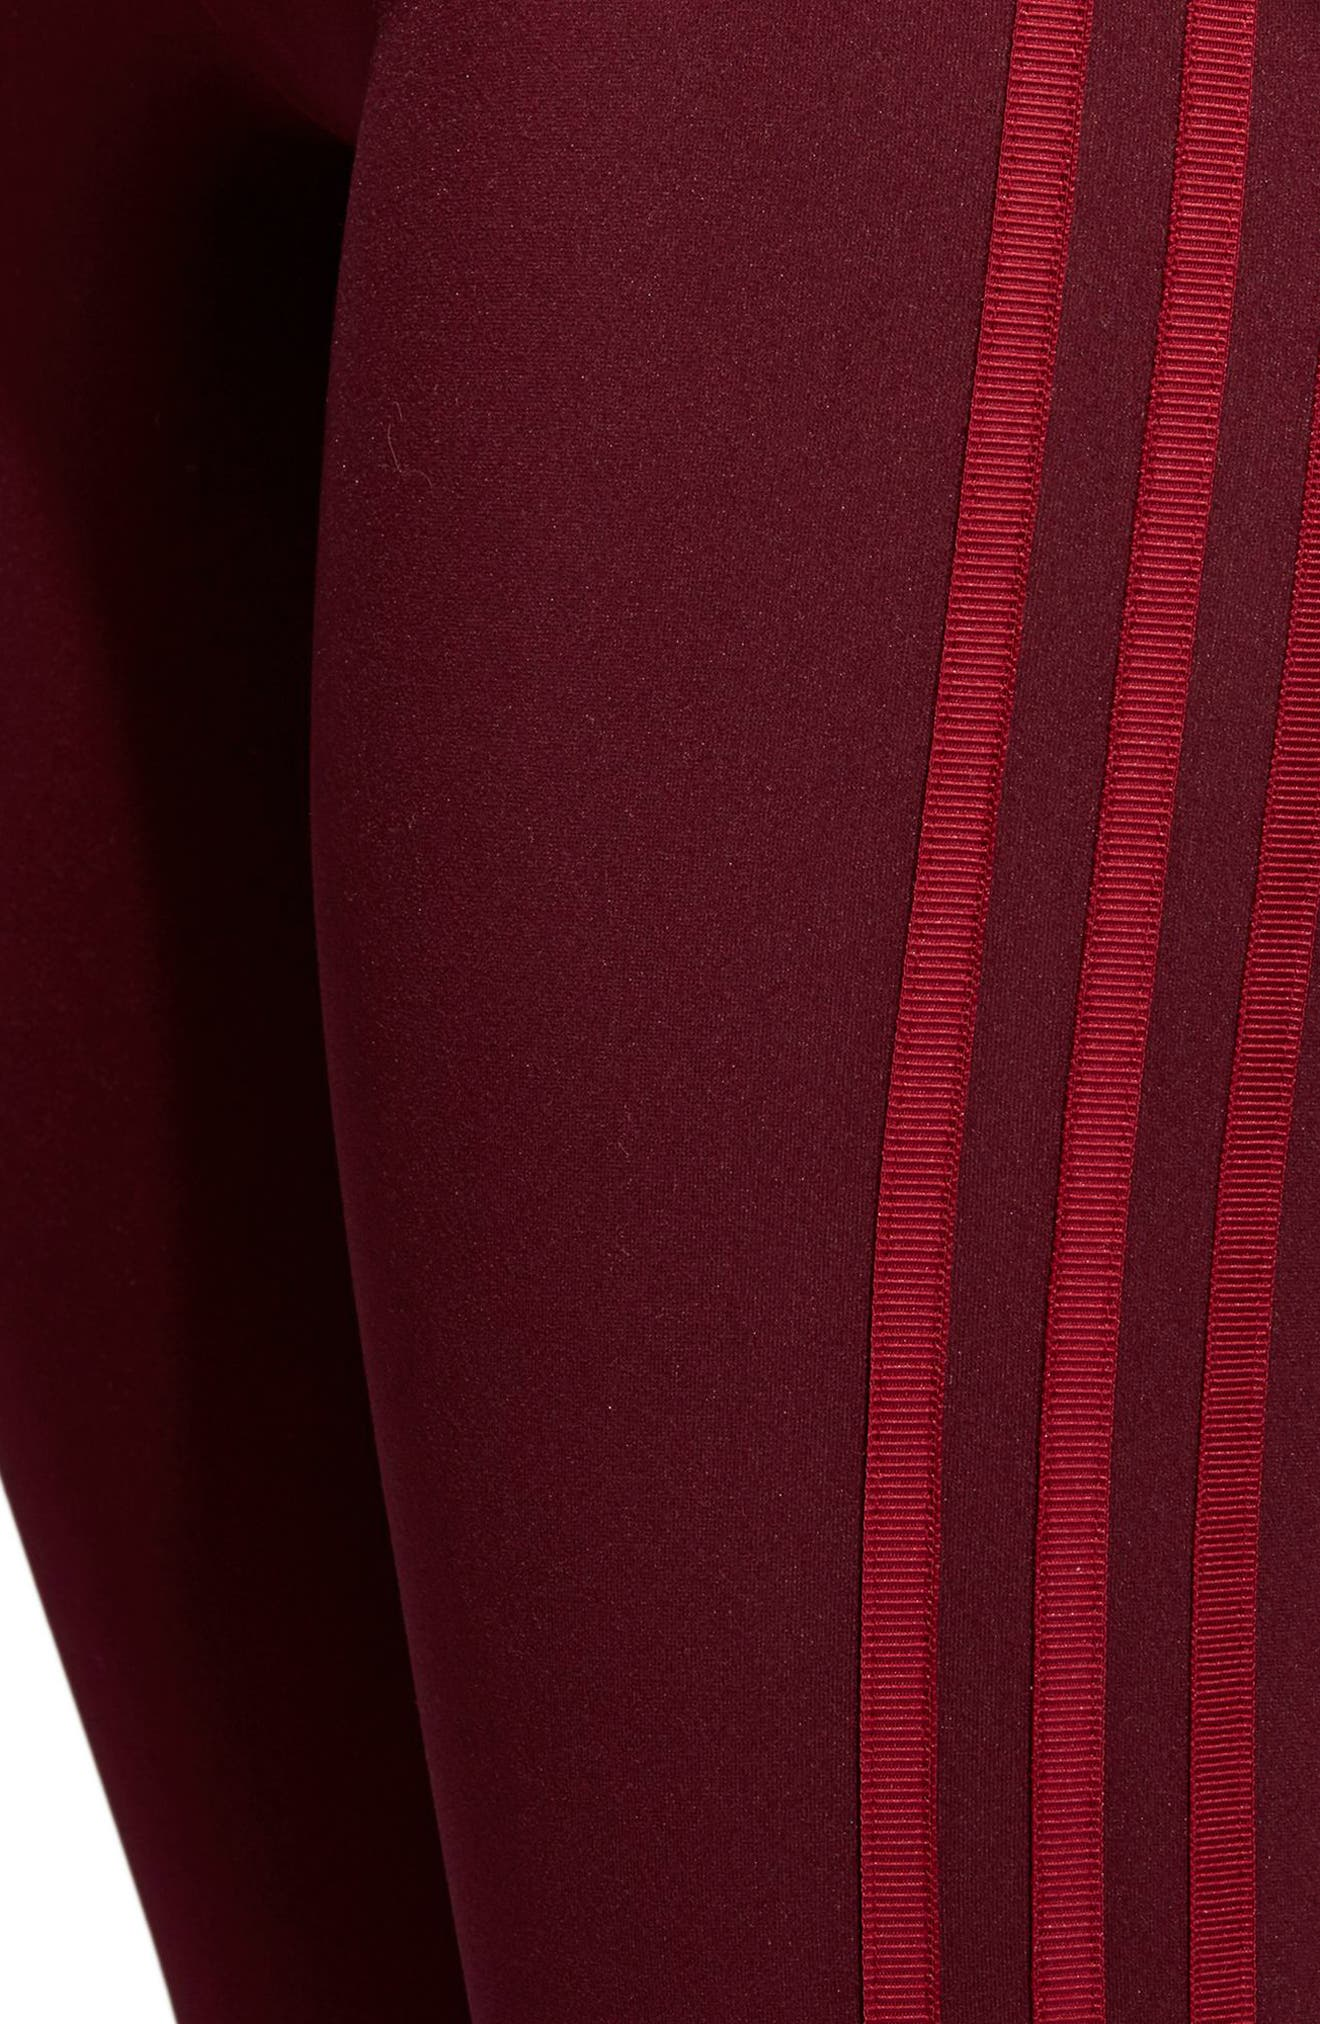 Originals Adibreak Tights,                             Alternate thumbnail 6, color,                             Maroon